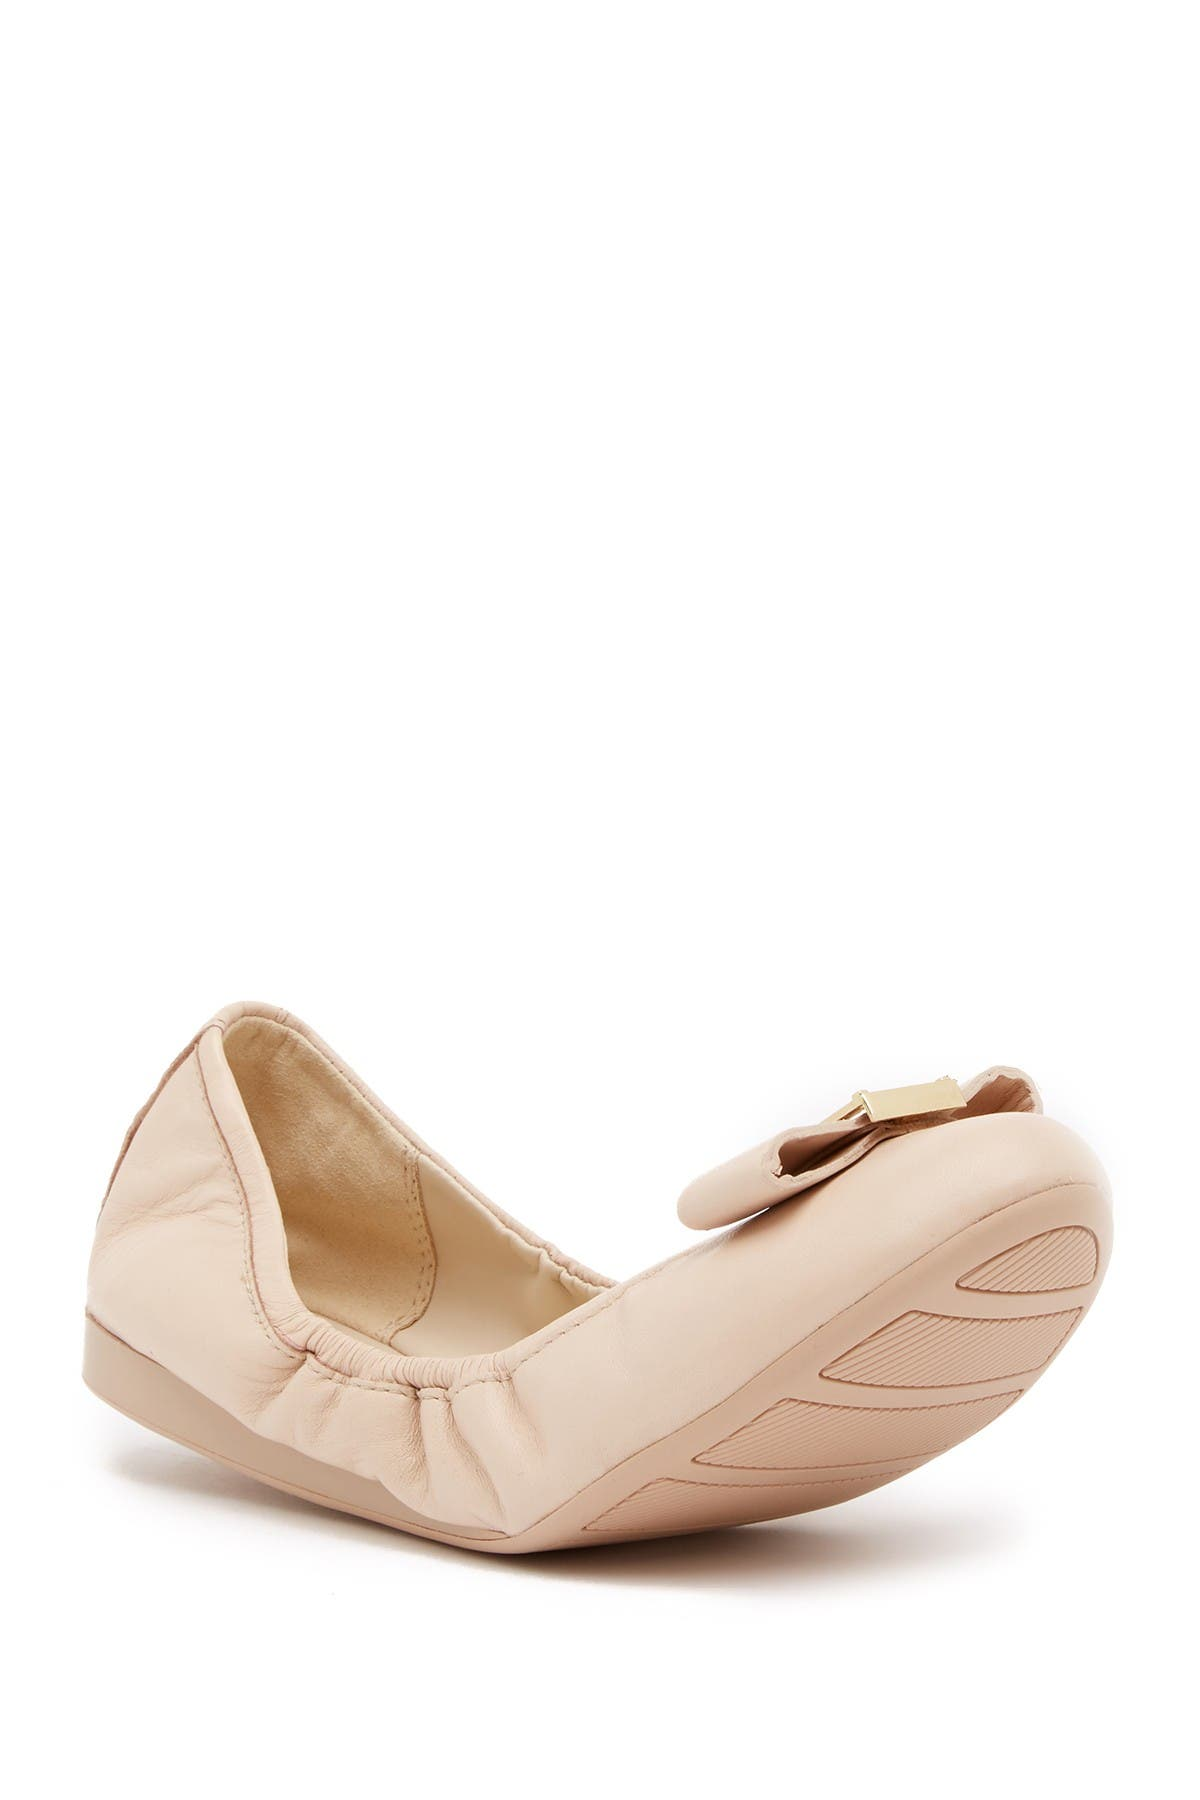 Cole Haan | Emory Bow Leather Ballet II